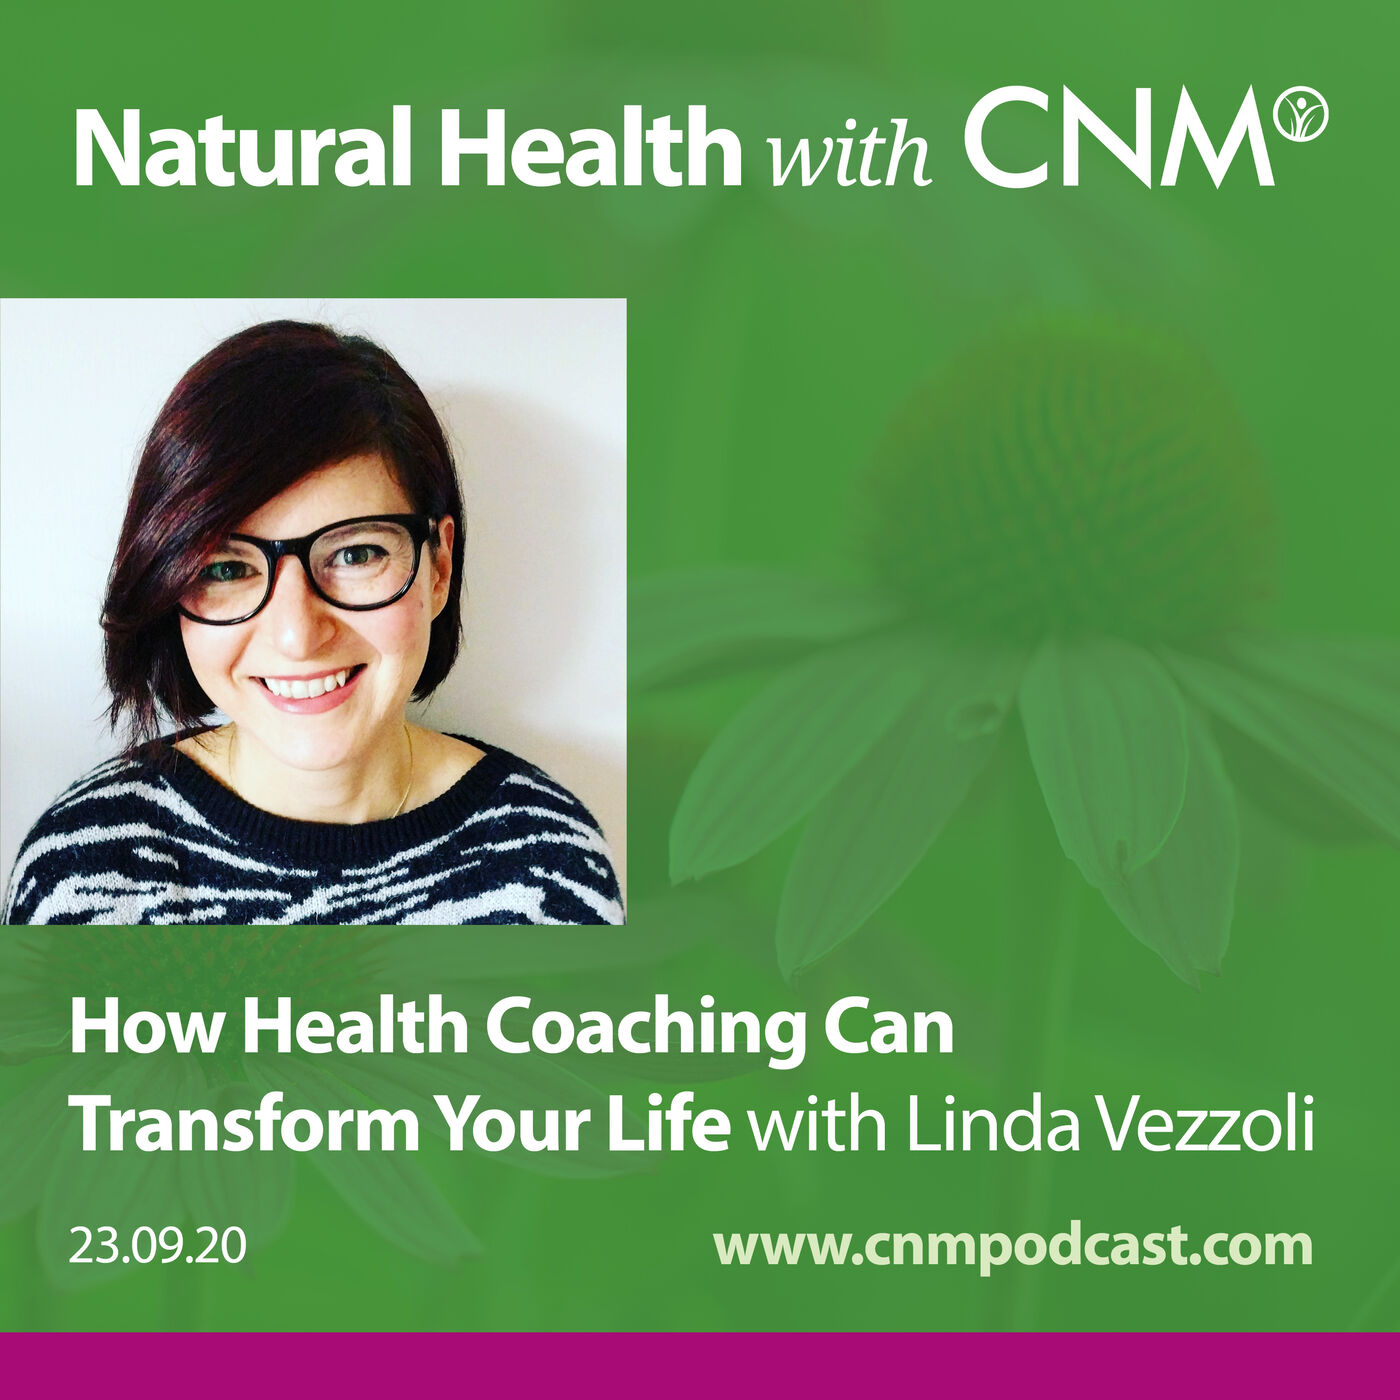 How Health Coaching Can Transform Your Life with Linda Vezzoli